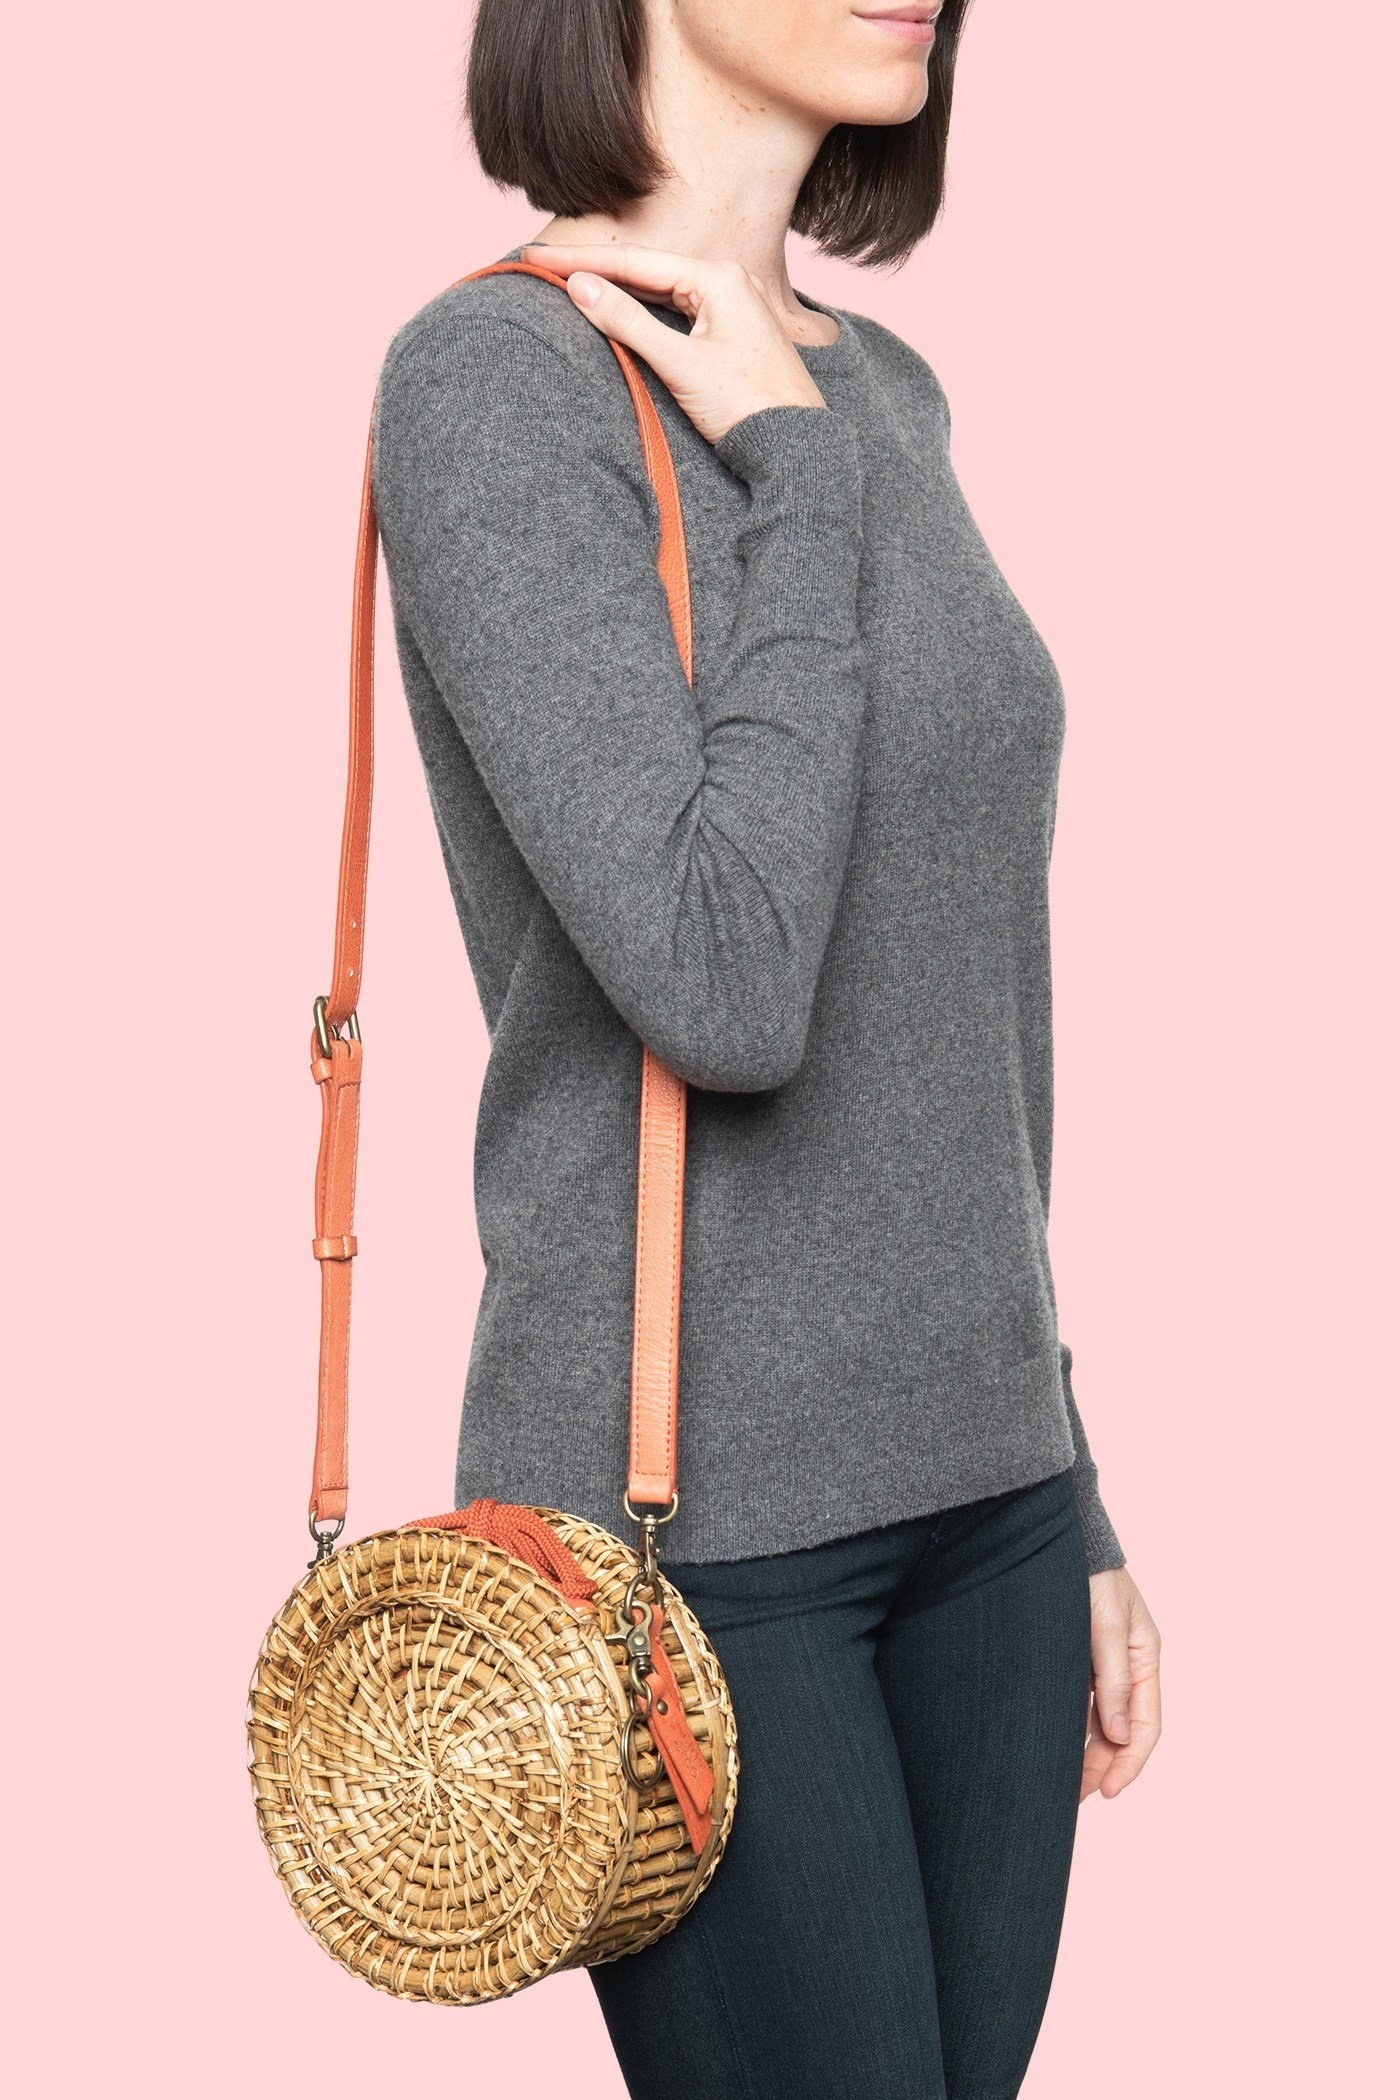 Model wearing the straw circular bag with orange tie and strap over their shoulder